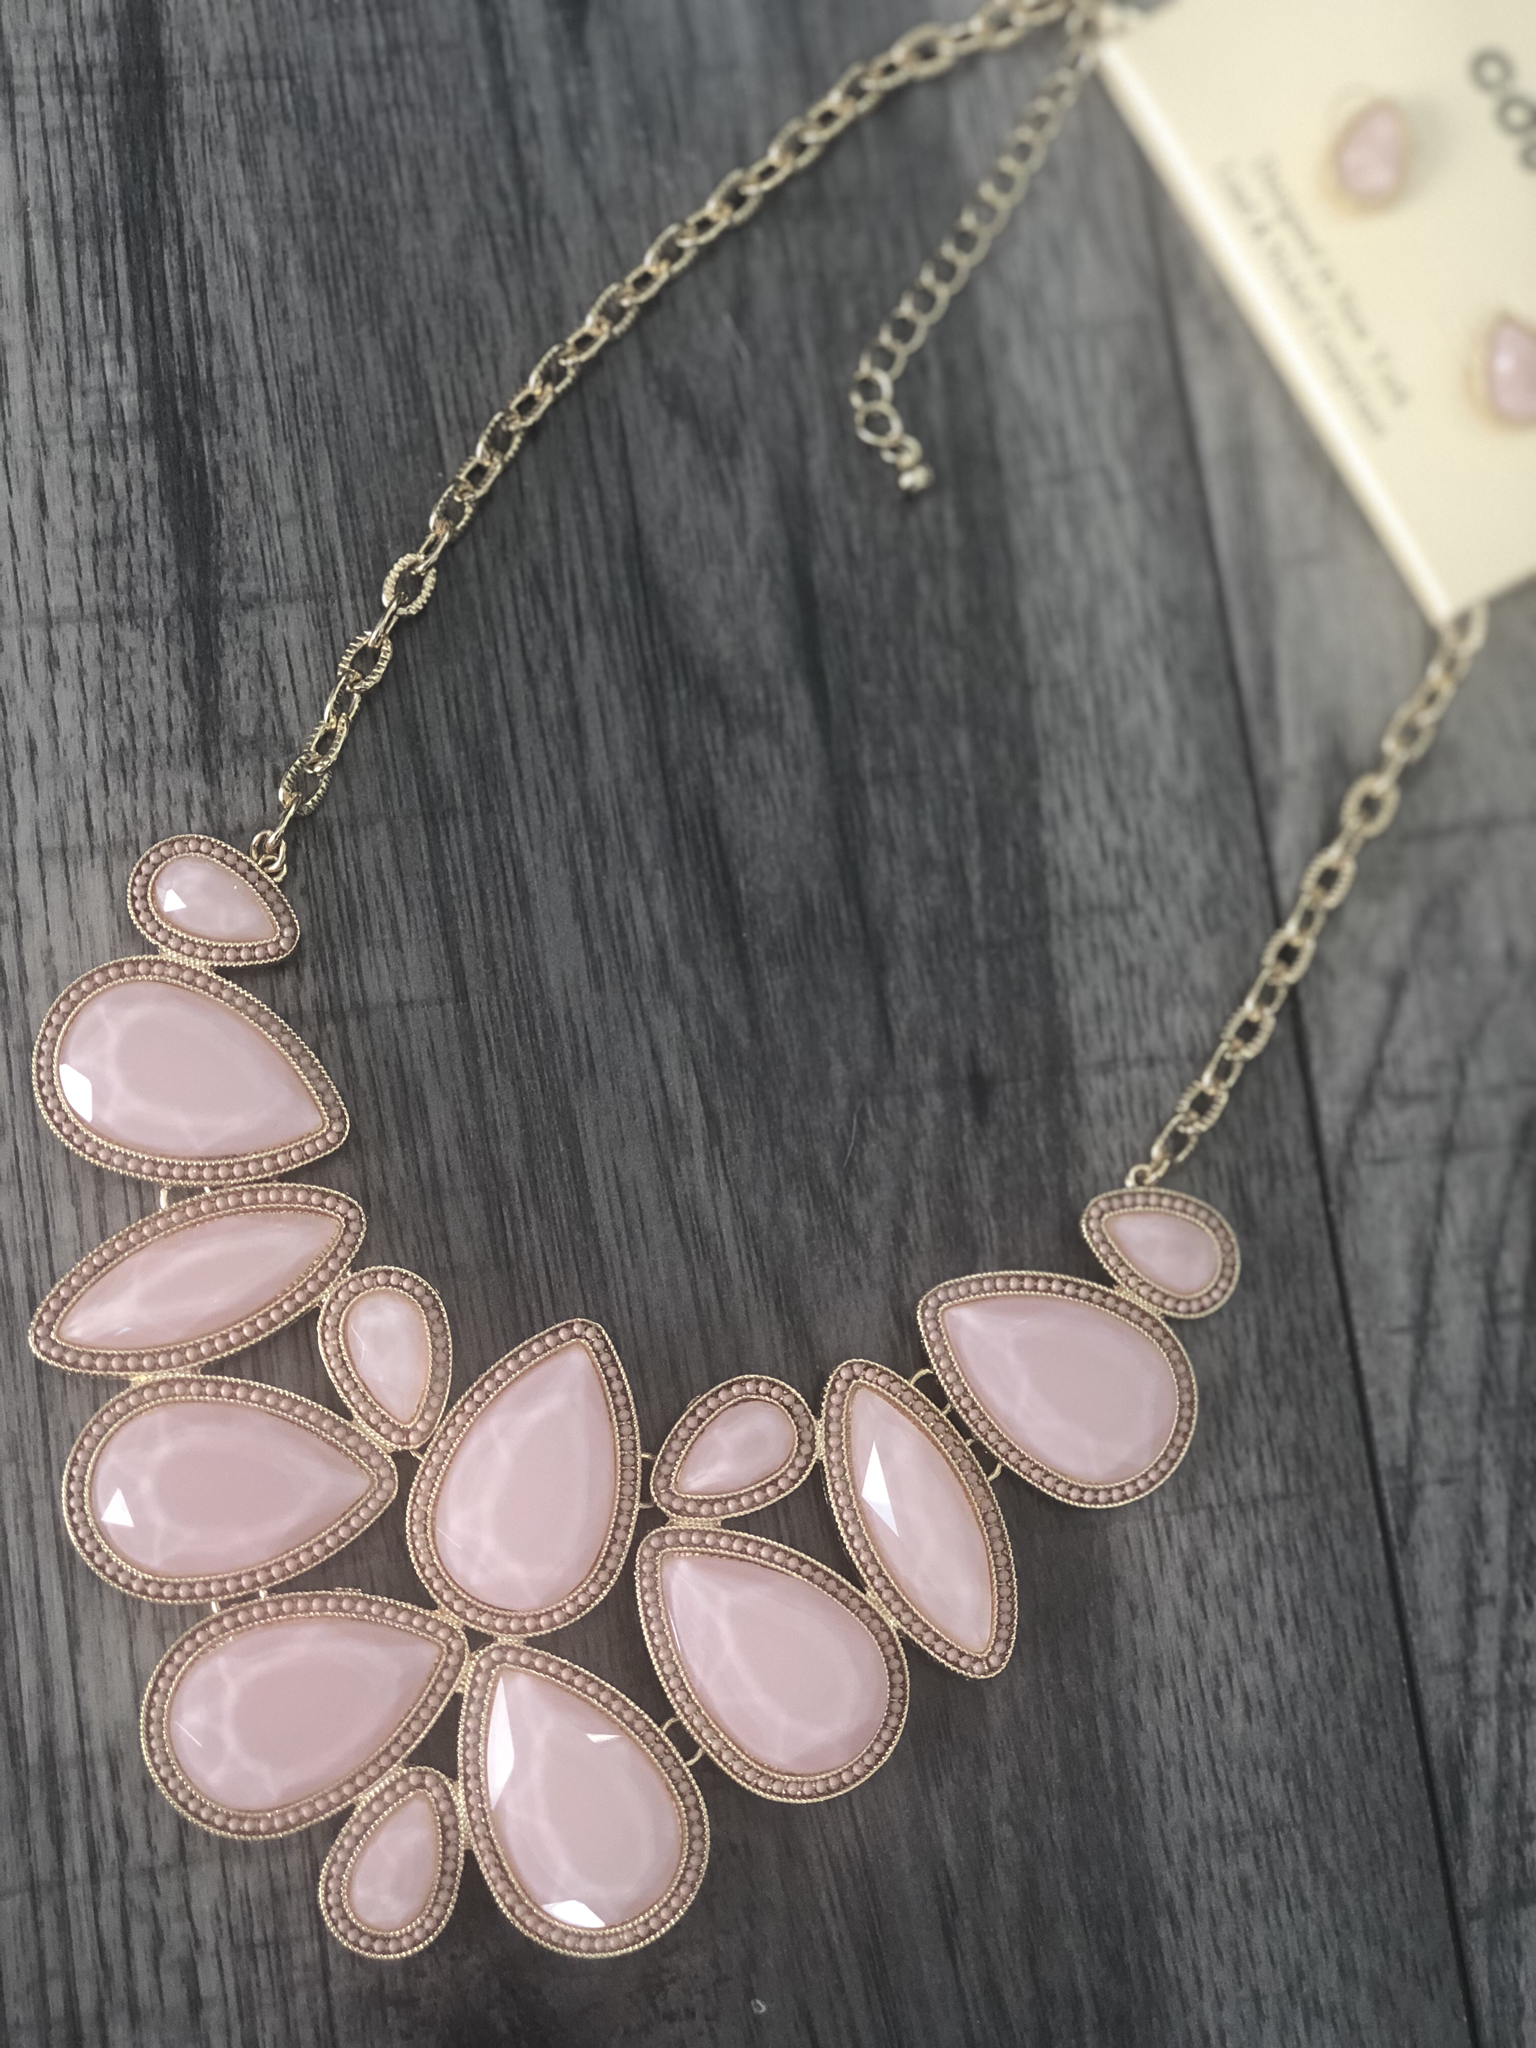 Blush Beauty Statement Necklace with Earrings